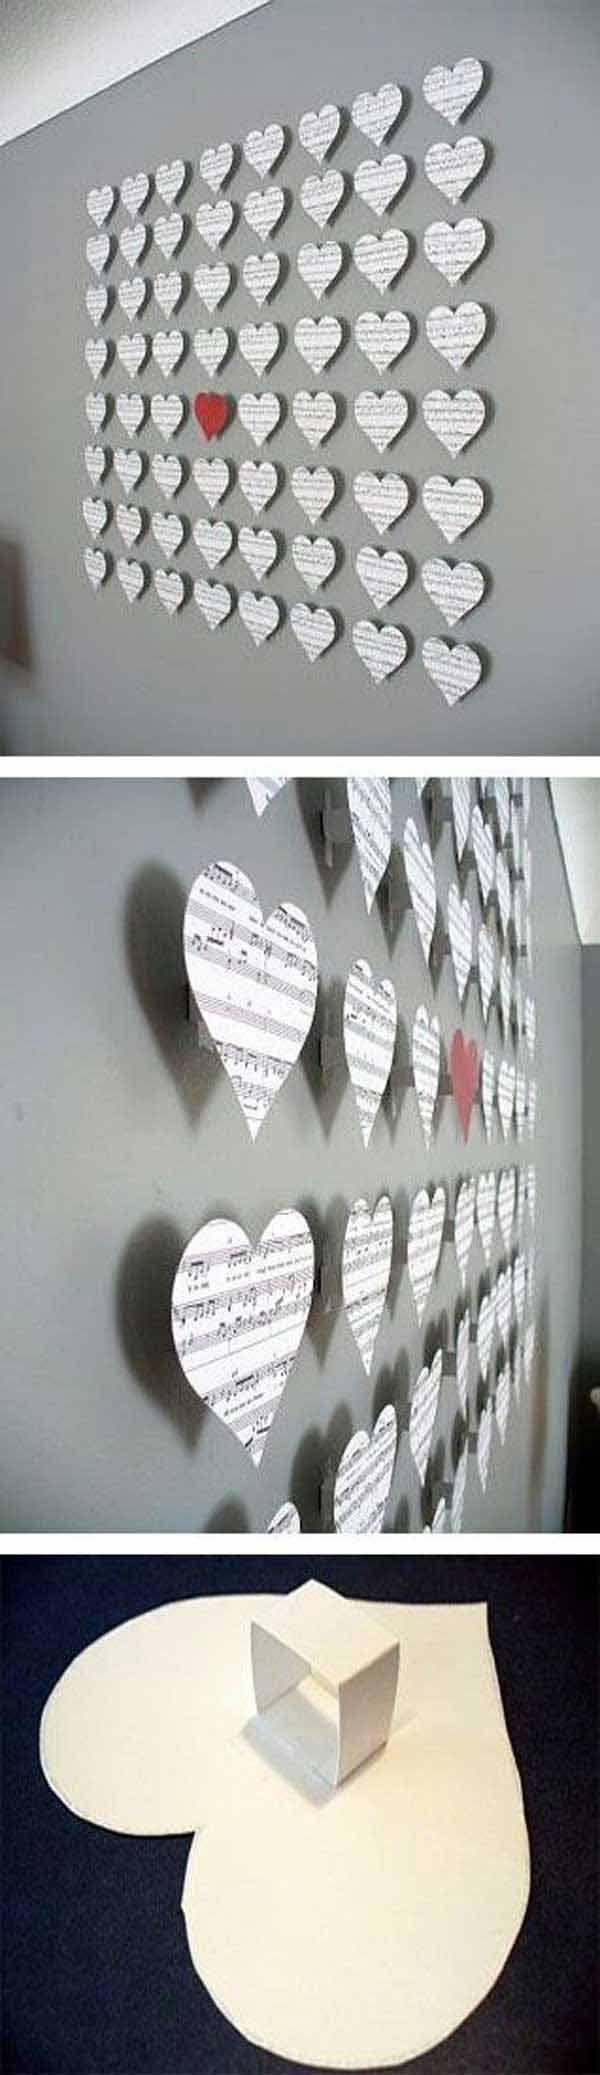 Bedroom wall decor ideas diy - 25 Best Ideas About Diy Wall Decor On Pinterest Diy Wall Art Wall Decor Crafts And Diy Wall Hanging